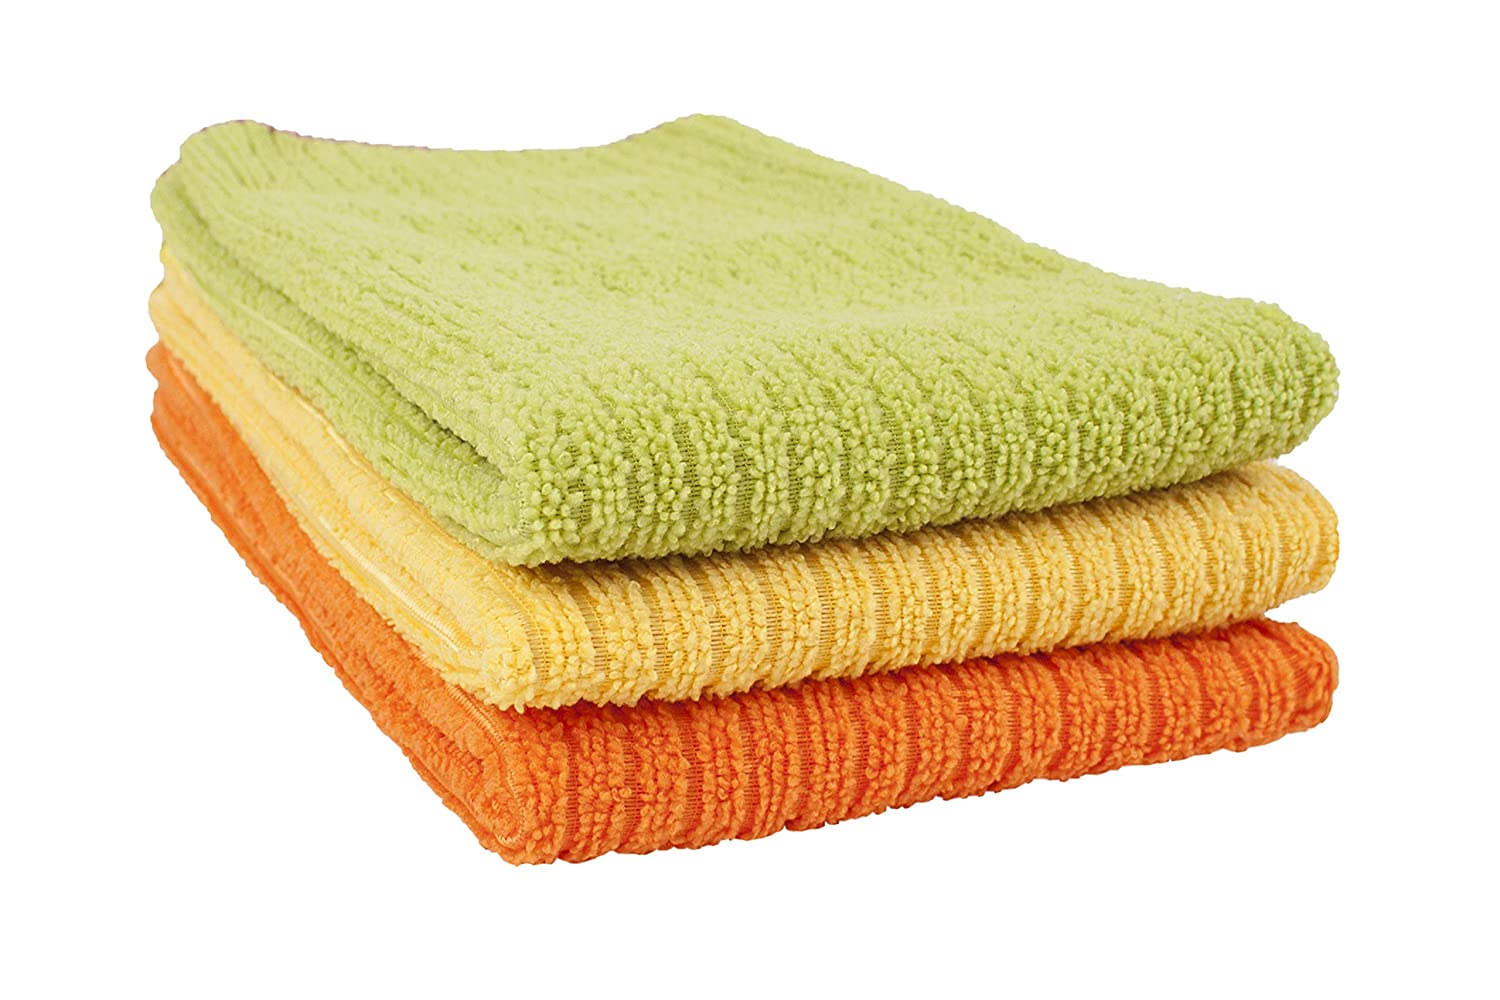 5-Pack John Ritzenthaler Co 60009 Ritz 100/% Cotton 12-inch x 12-inch Kitchen Dish Towel Gentle Cleaning Wash Cloth with Poly Scour Side Blue//Green